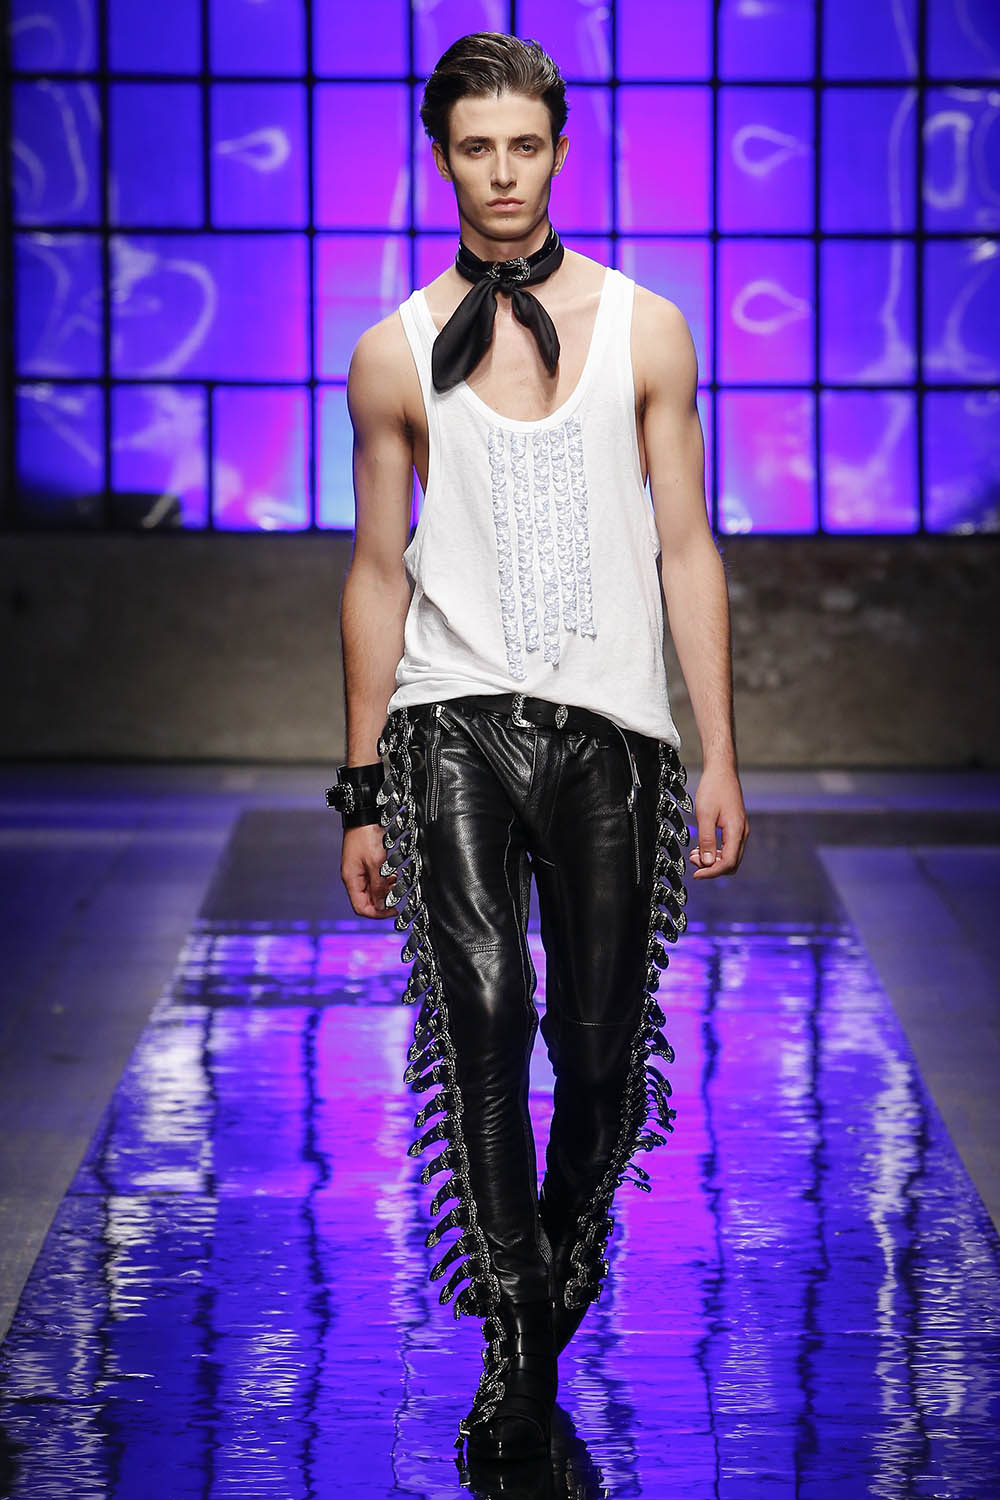 Model walking the catwalk at DSquared2 (by Dean and Dan Caten) S